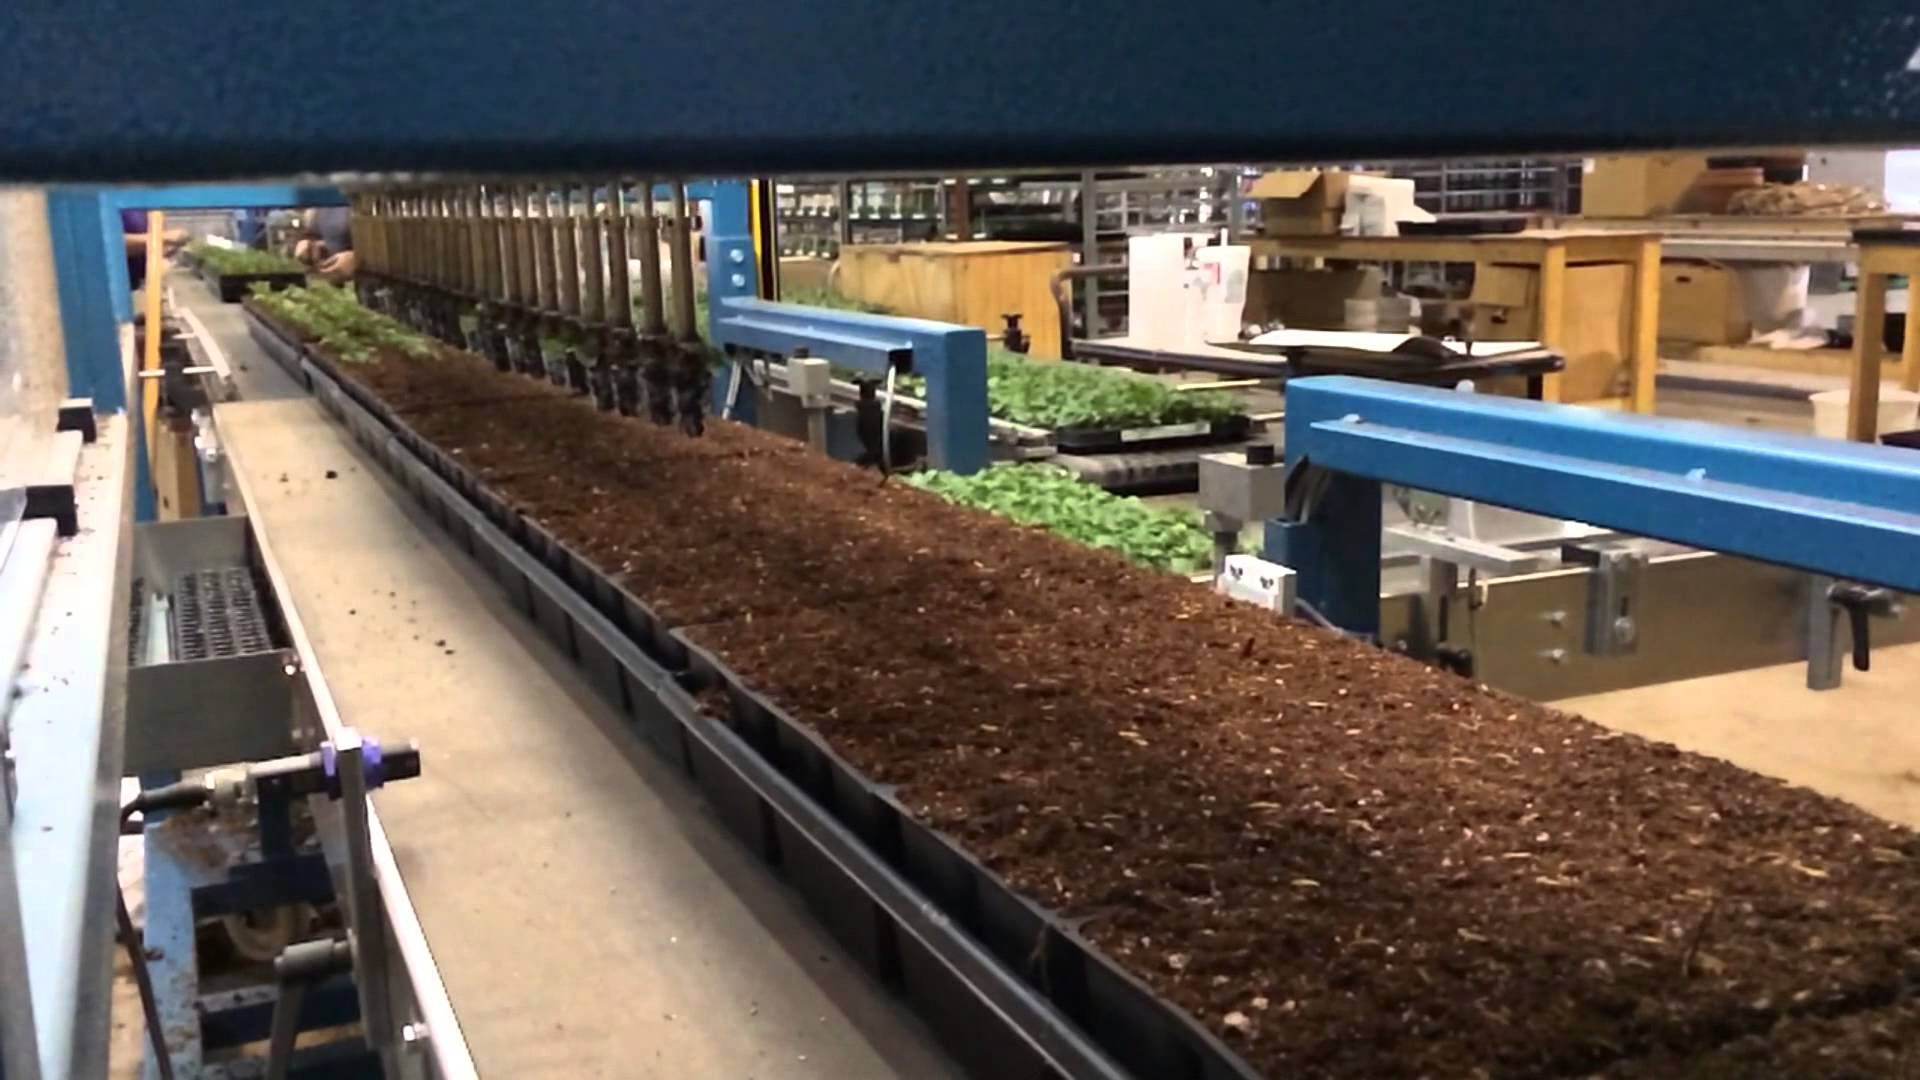 Watch How a Pack Planter Robot Transplant Pansies